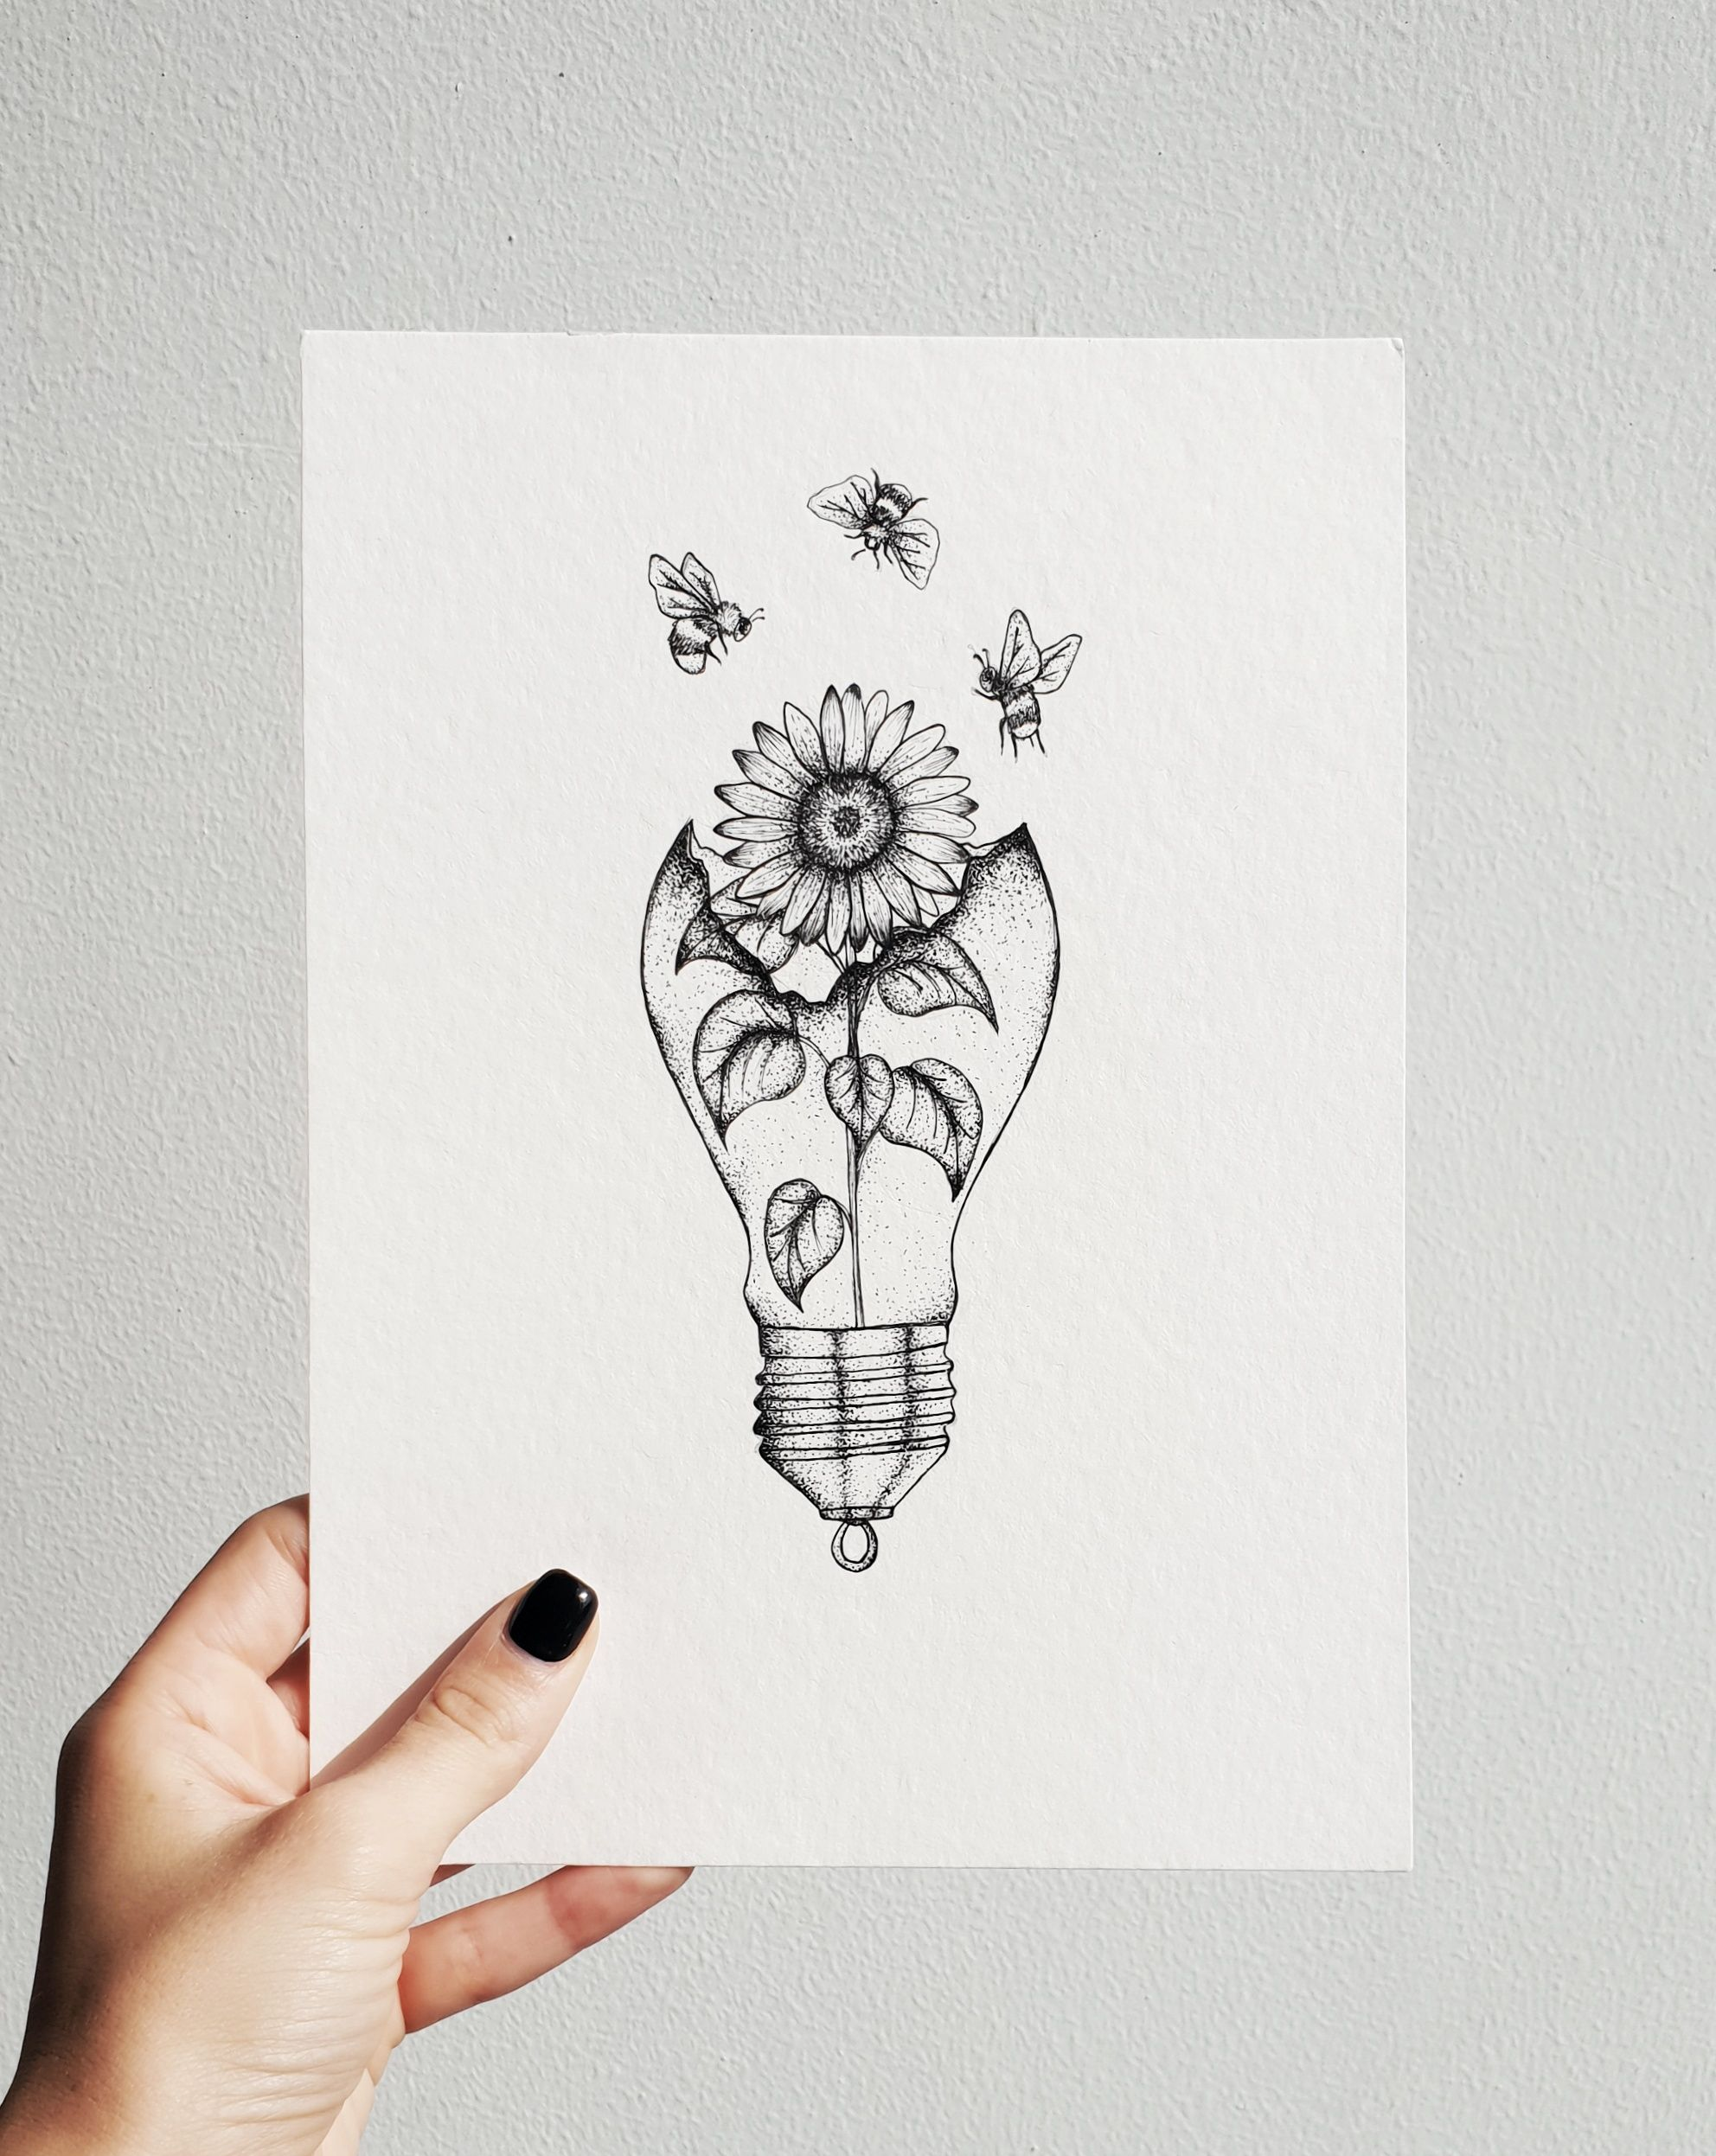 Photo of Sunflower in a light bulb tattoo design